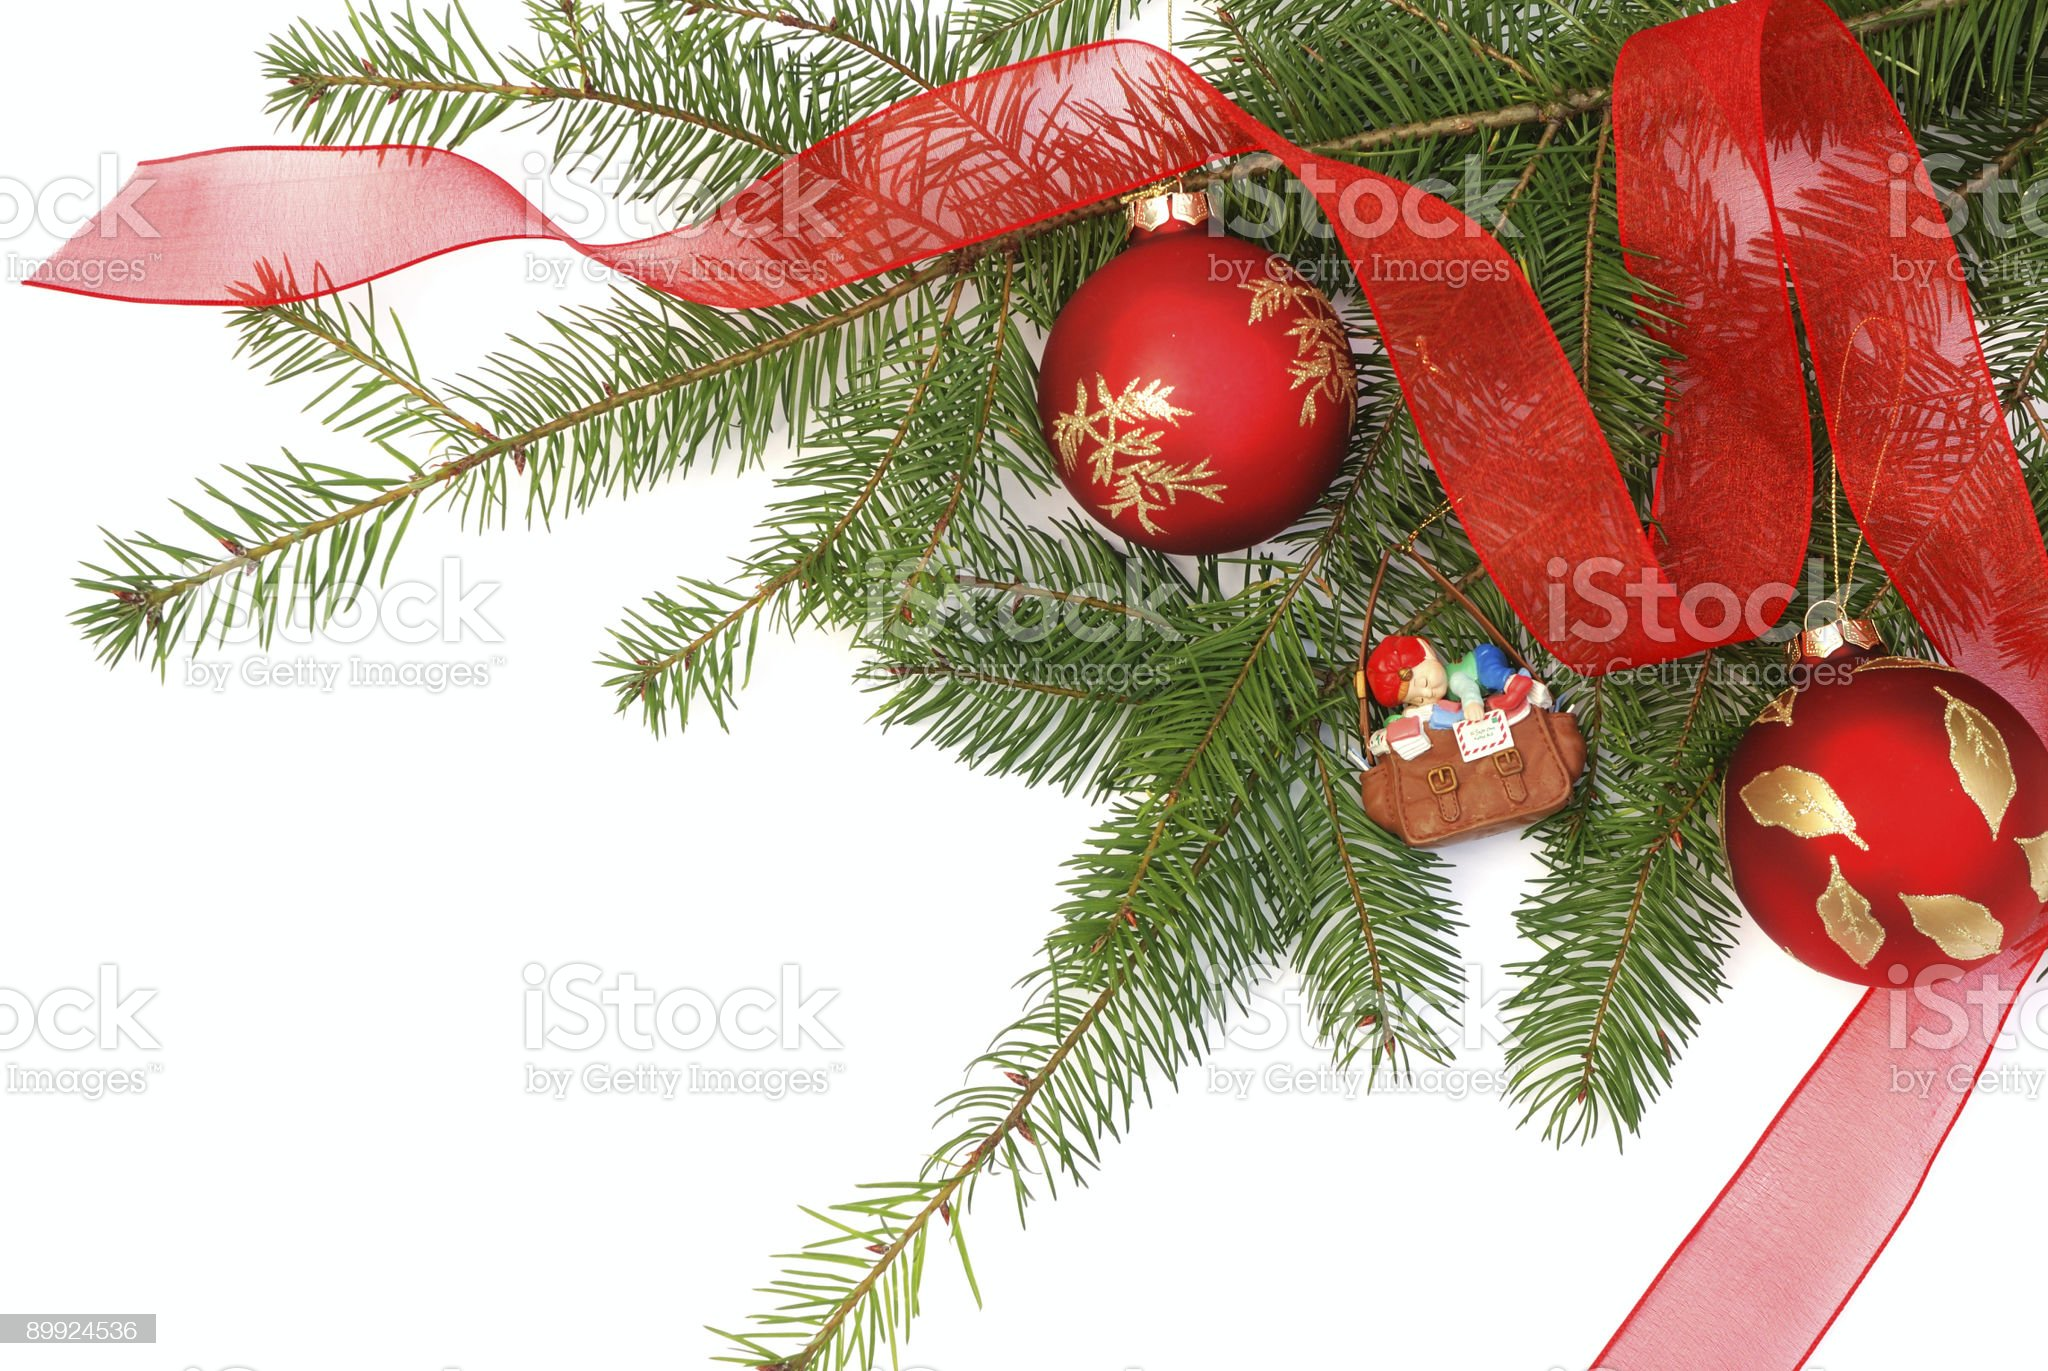 christmas ornaments and pine tree branches royalty-free stock photo